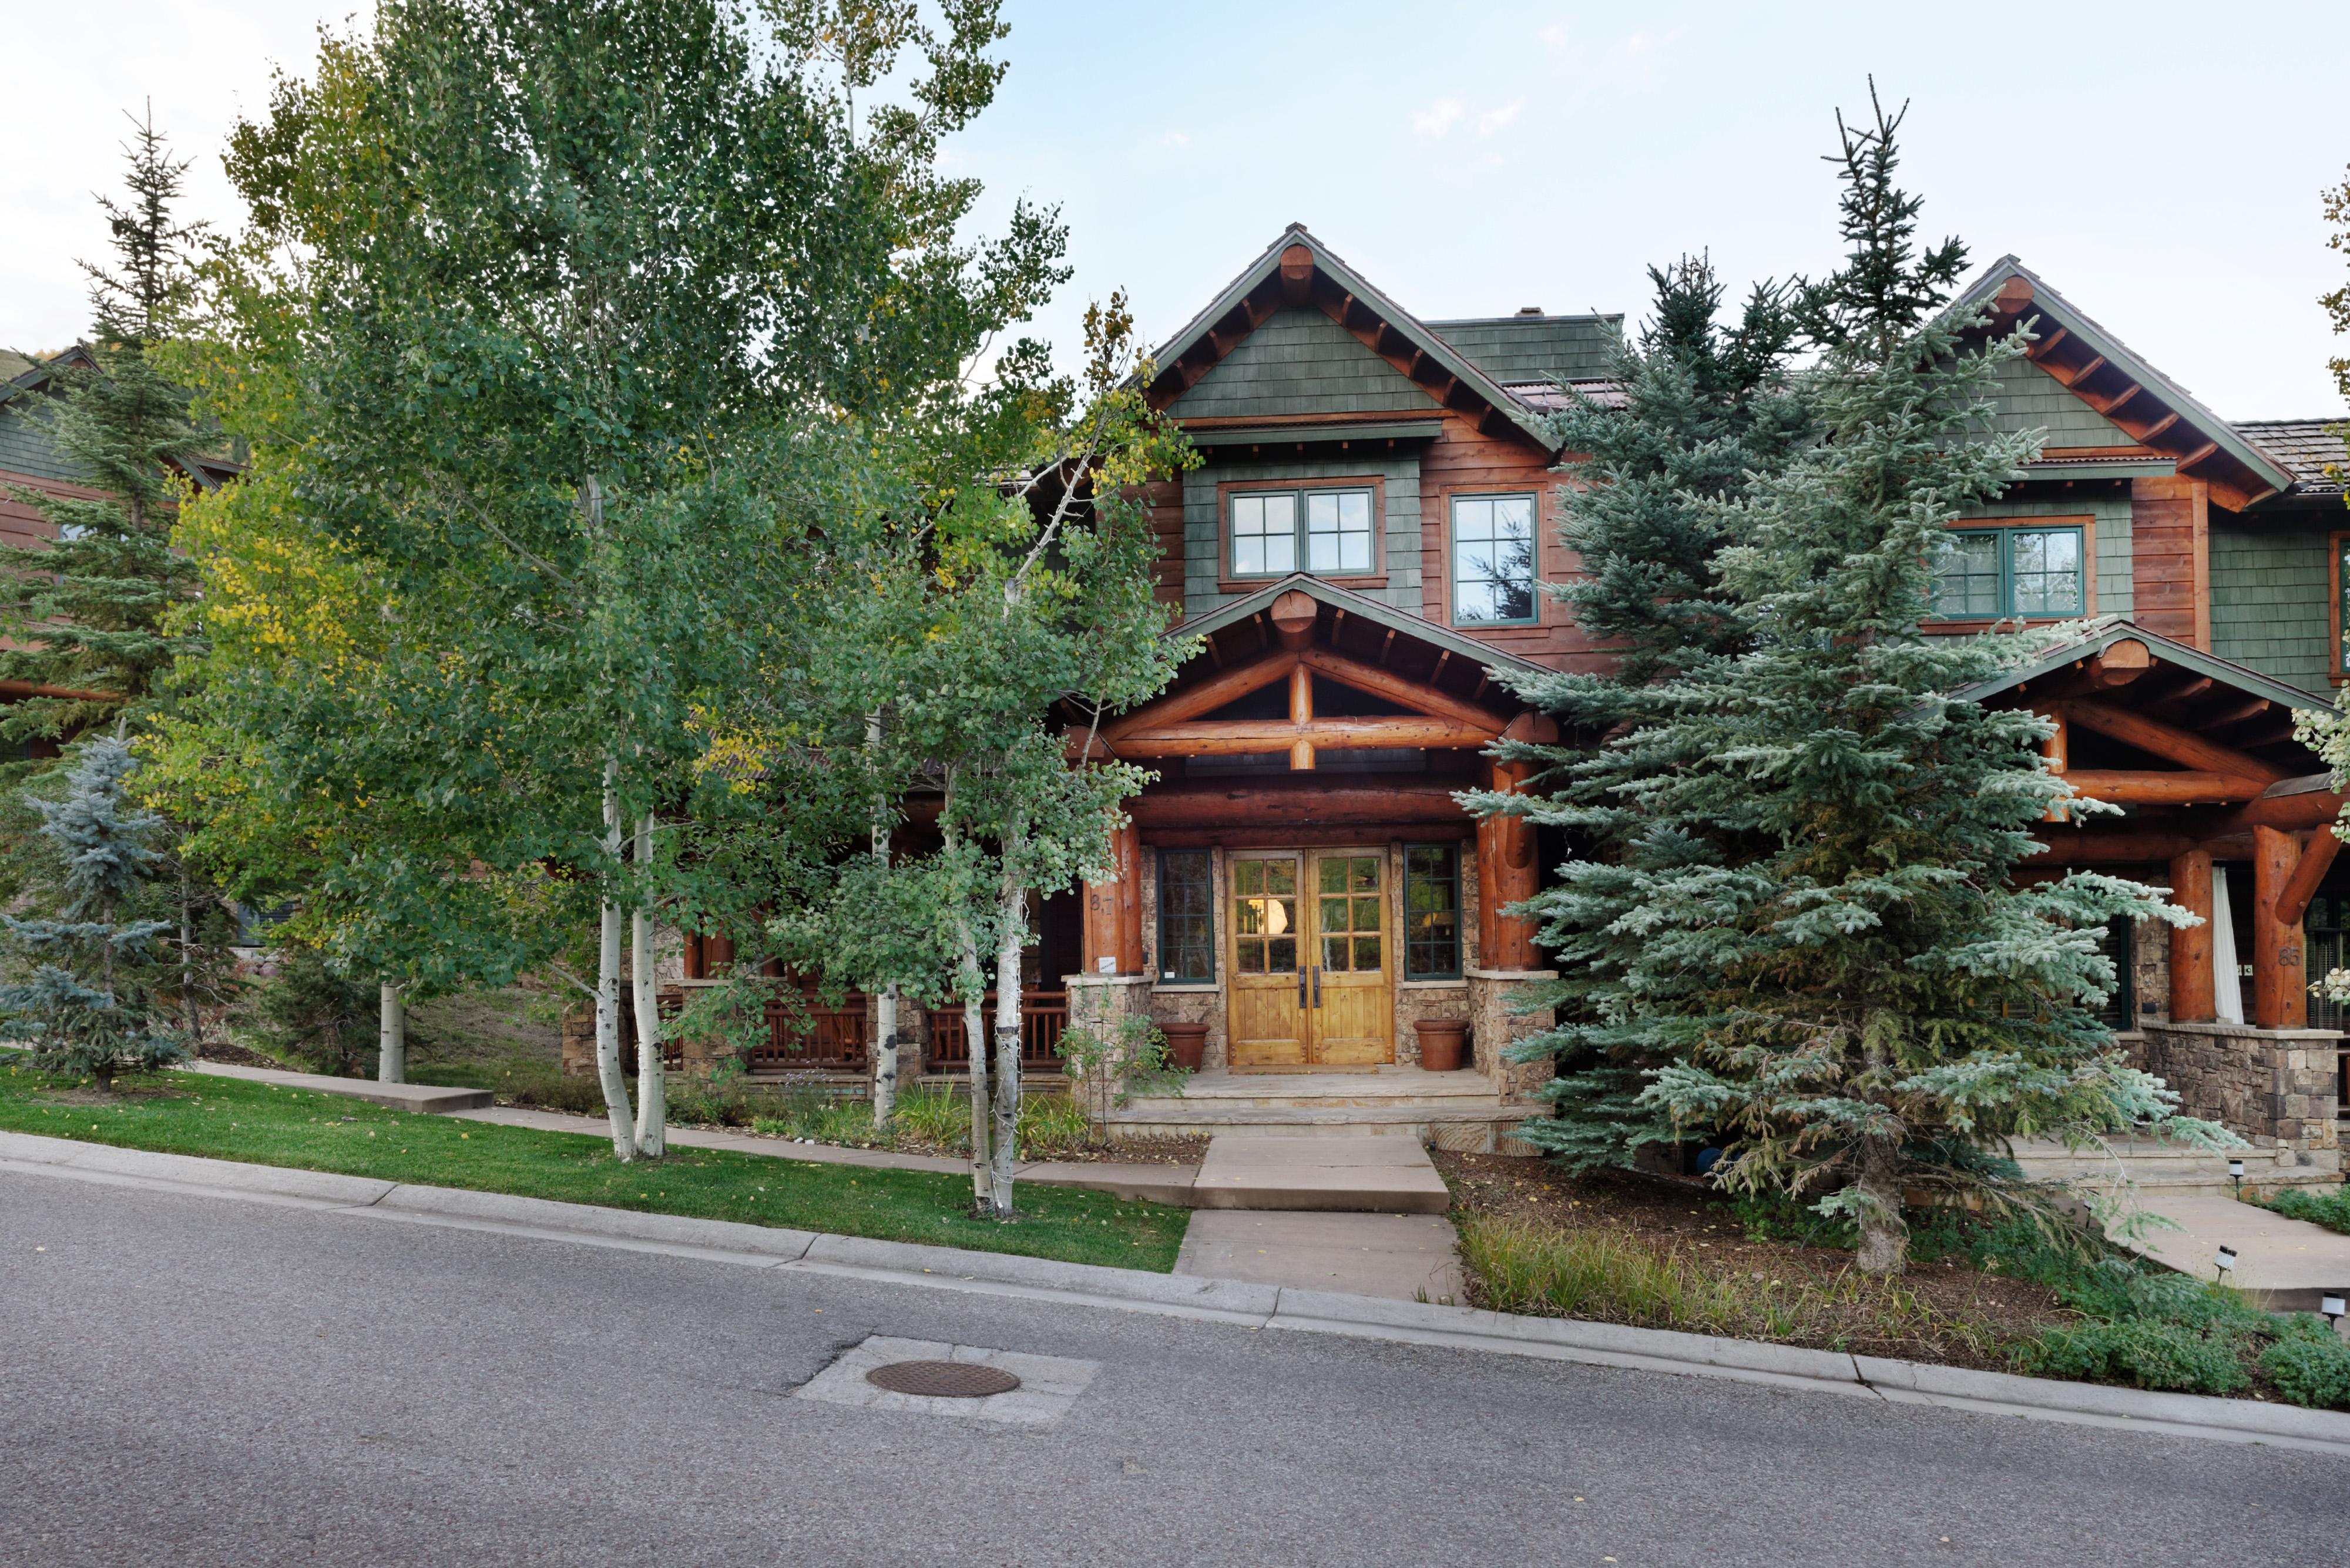 Townhouse for Sale at A Home for all Seasons 87 Thunderbowl Lane Unit 7 Aspen, Colorado 81611 United States